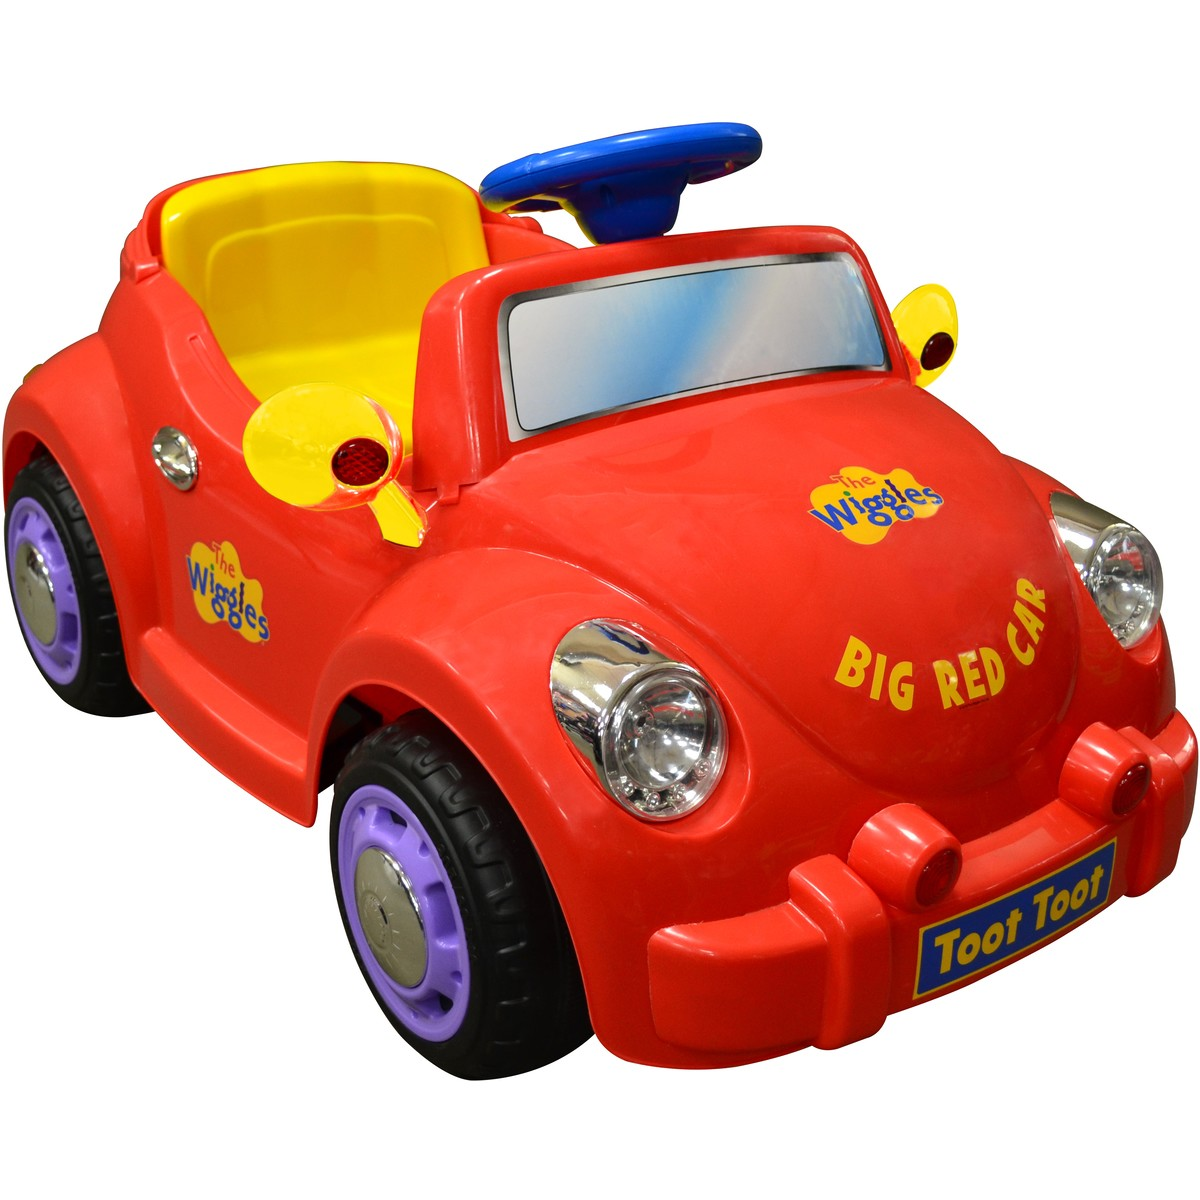 Big W Toy Cars The Wiggles Big Red Car 6v Red Big W